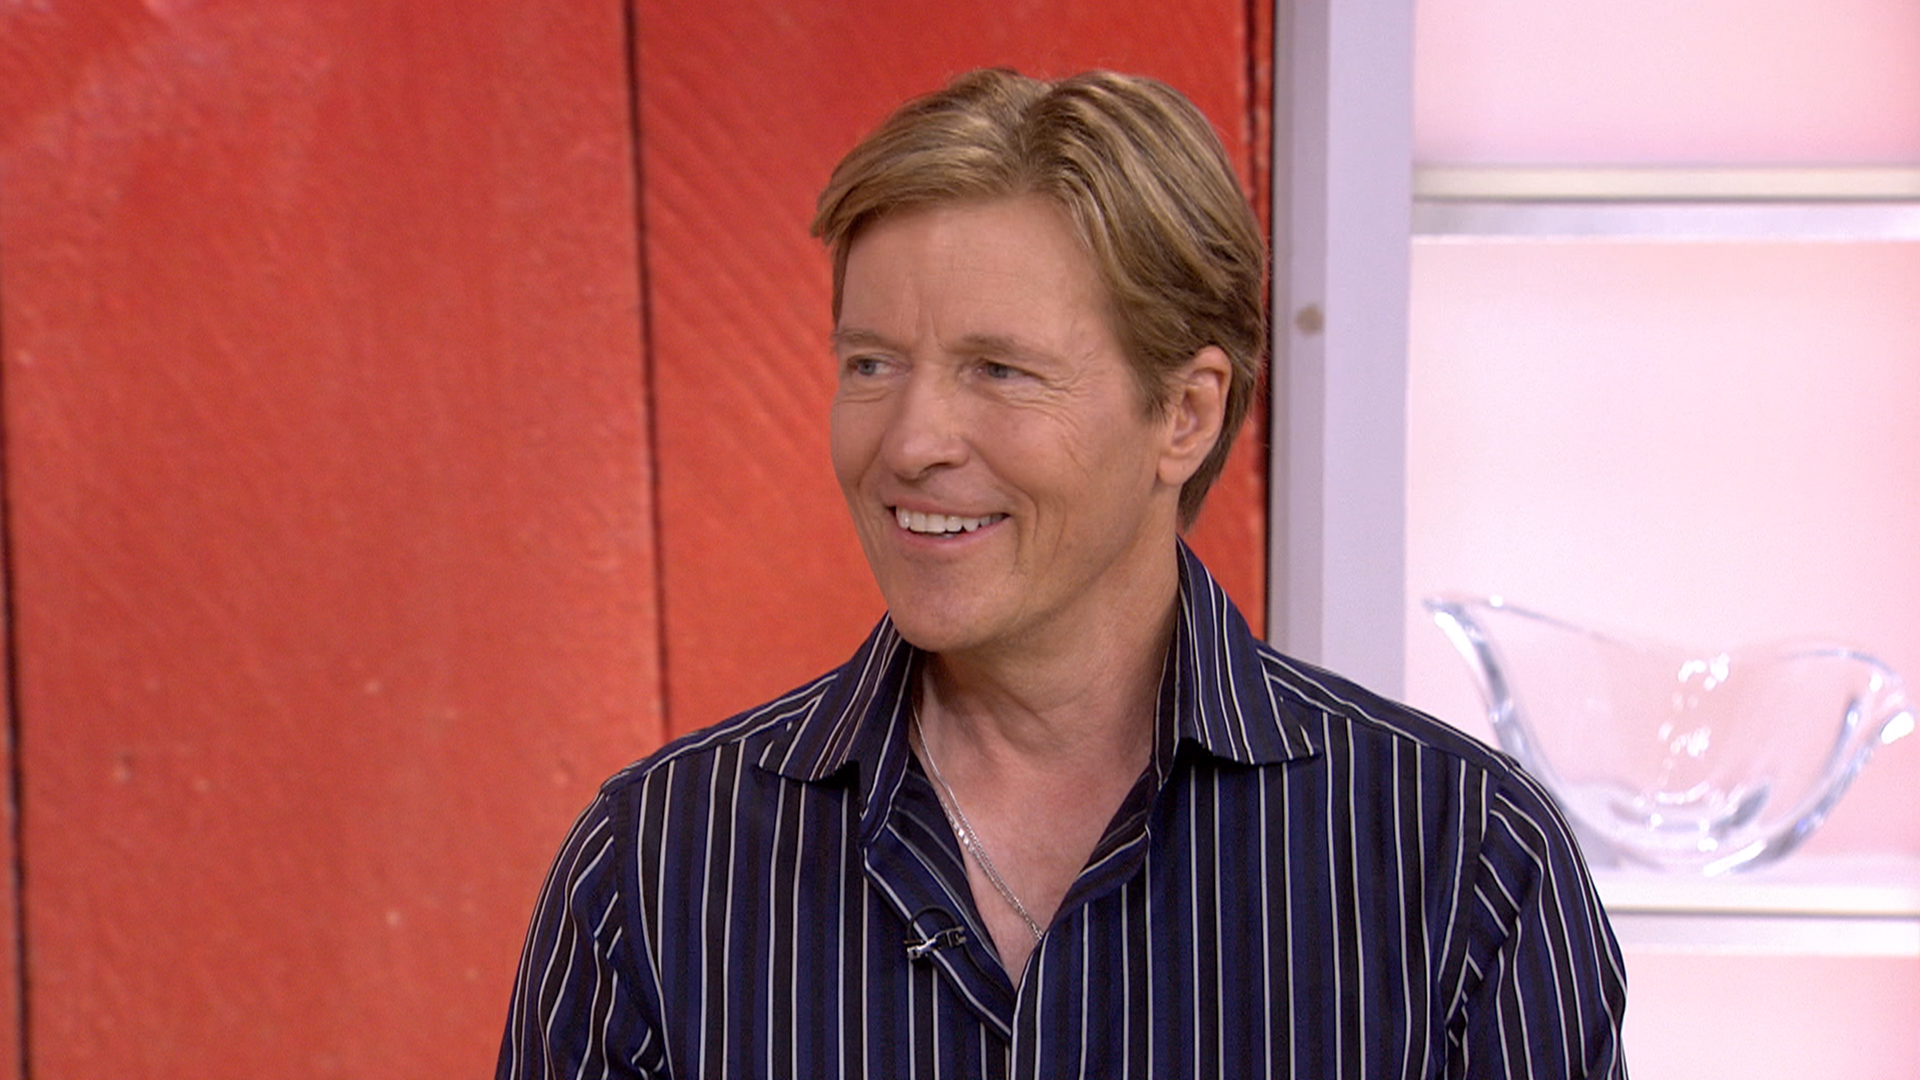 Jack Wagner Wife Classy jack wagner co-stars with ex-wife on hallmark show - today